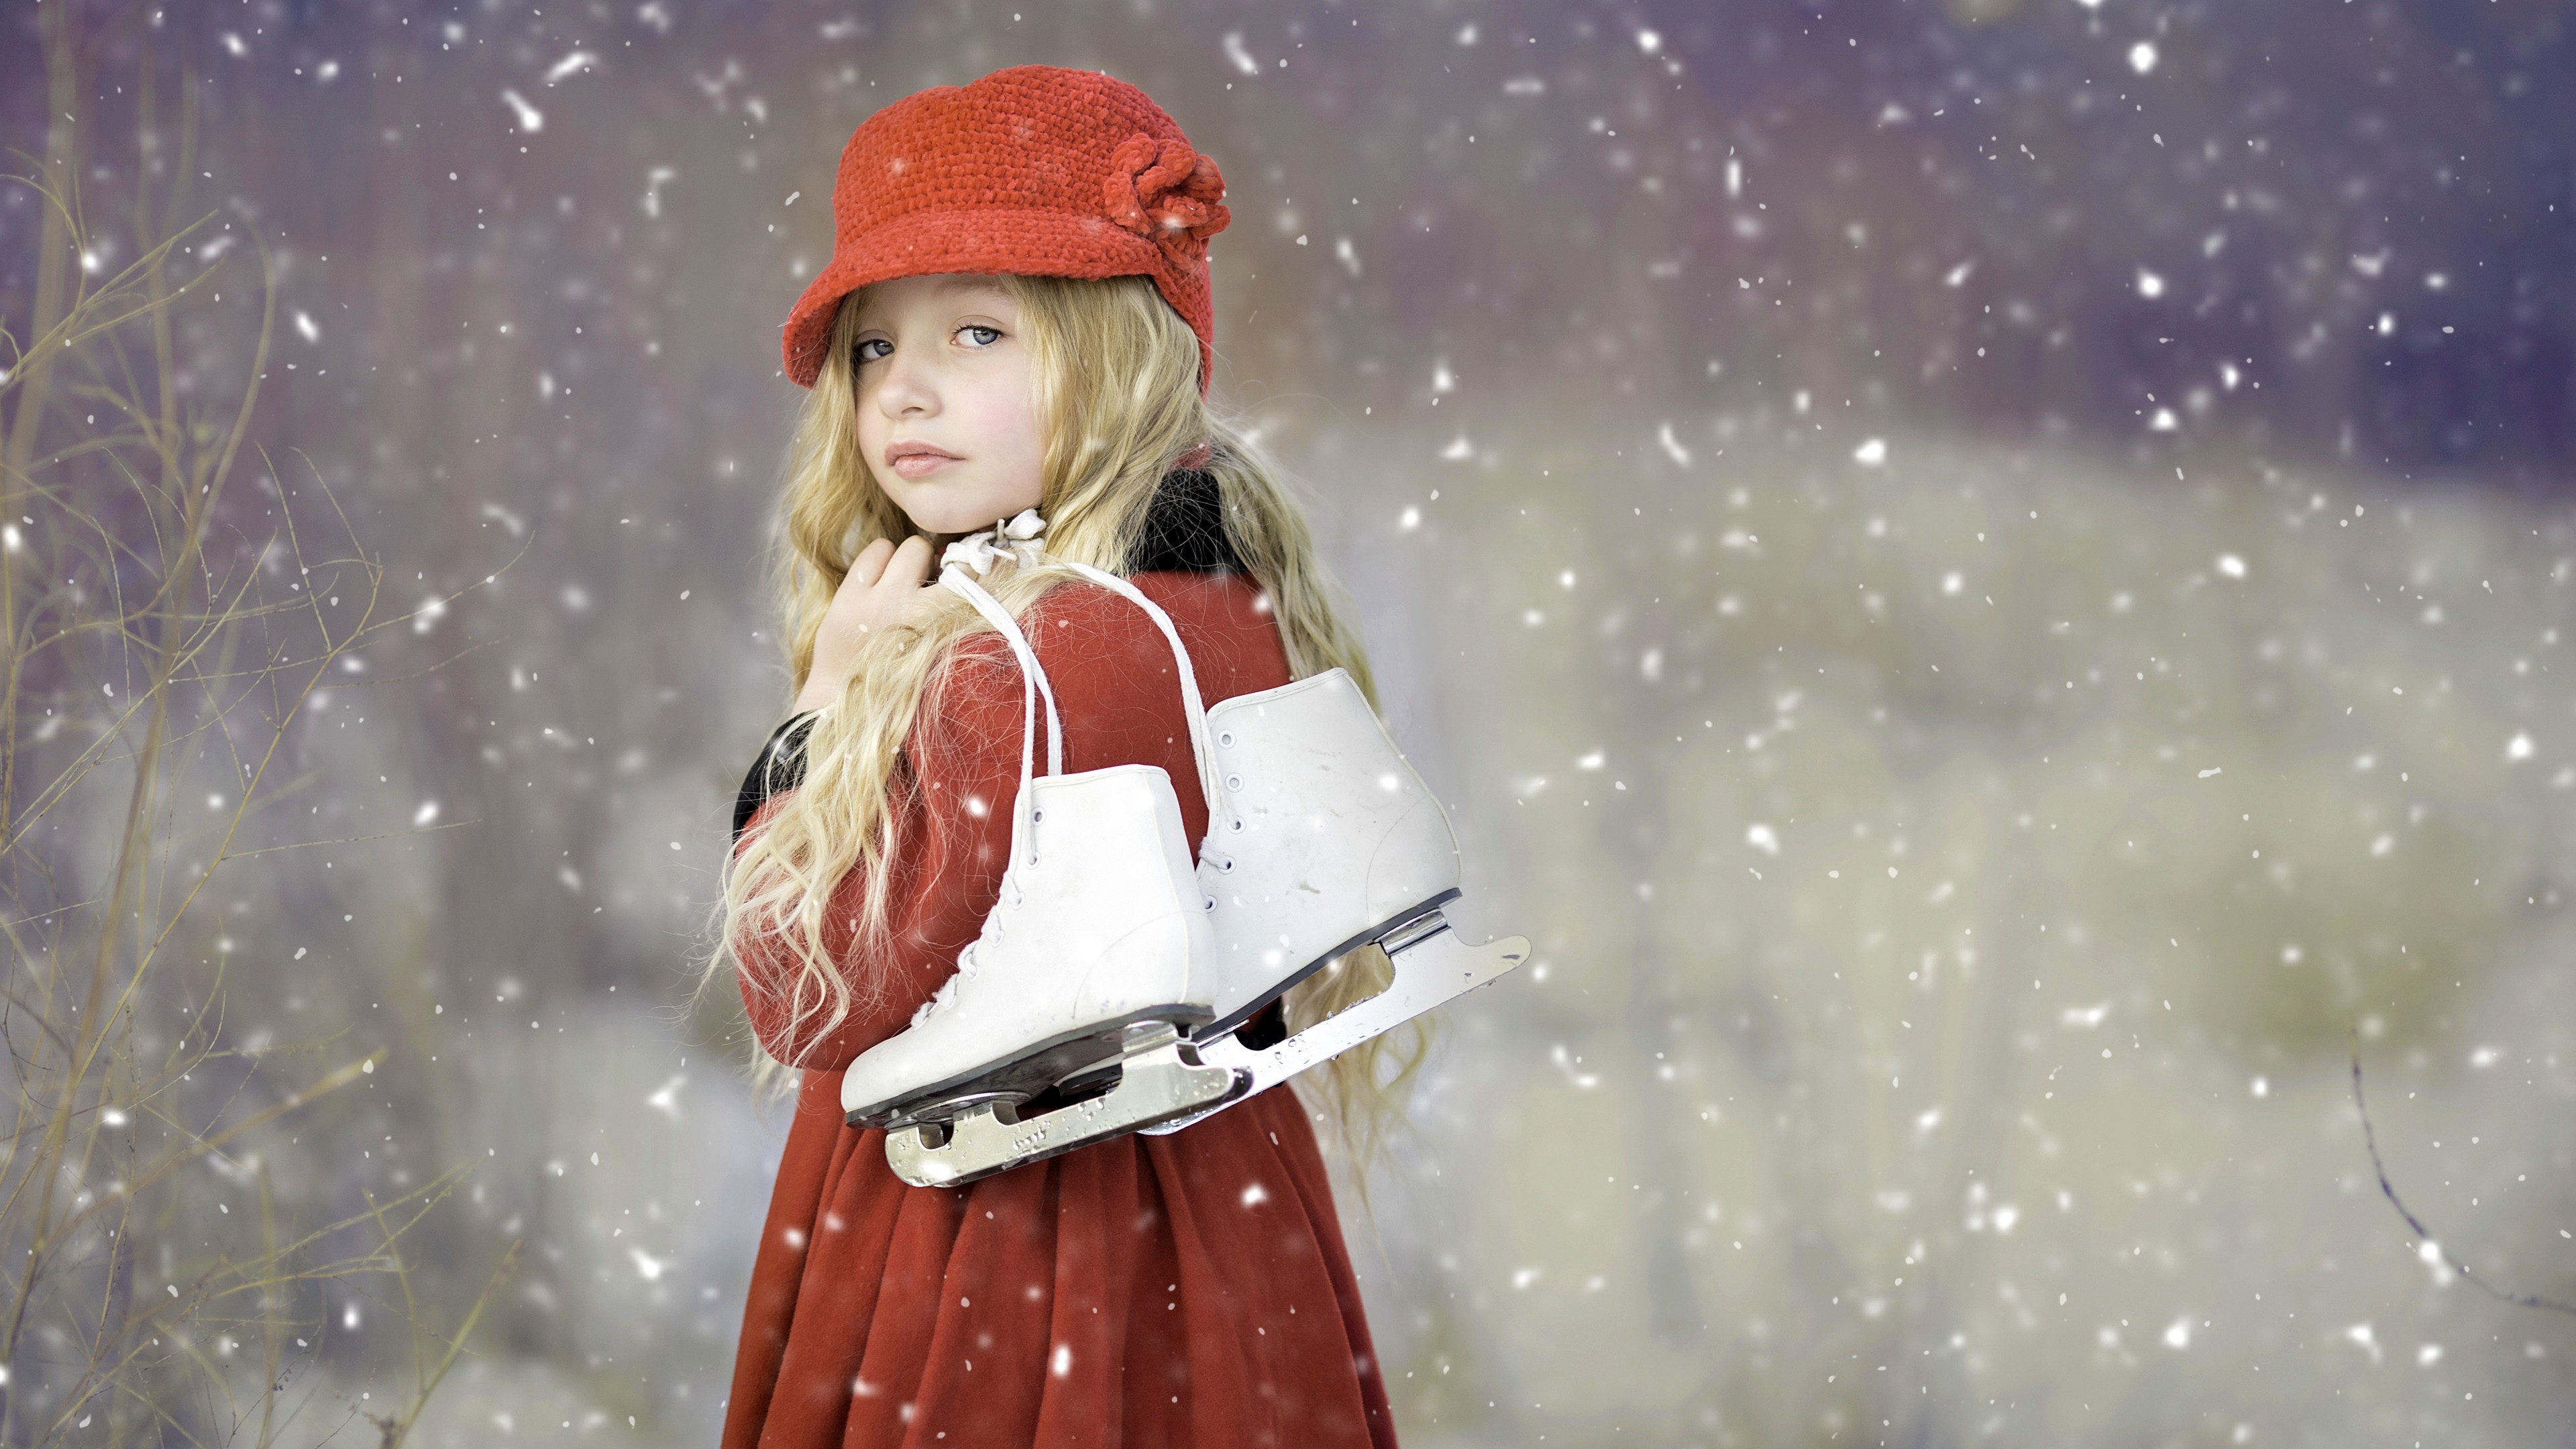 cute girl ice skates hd cute 4k wallpapers images